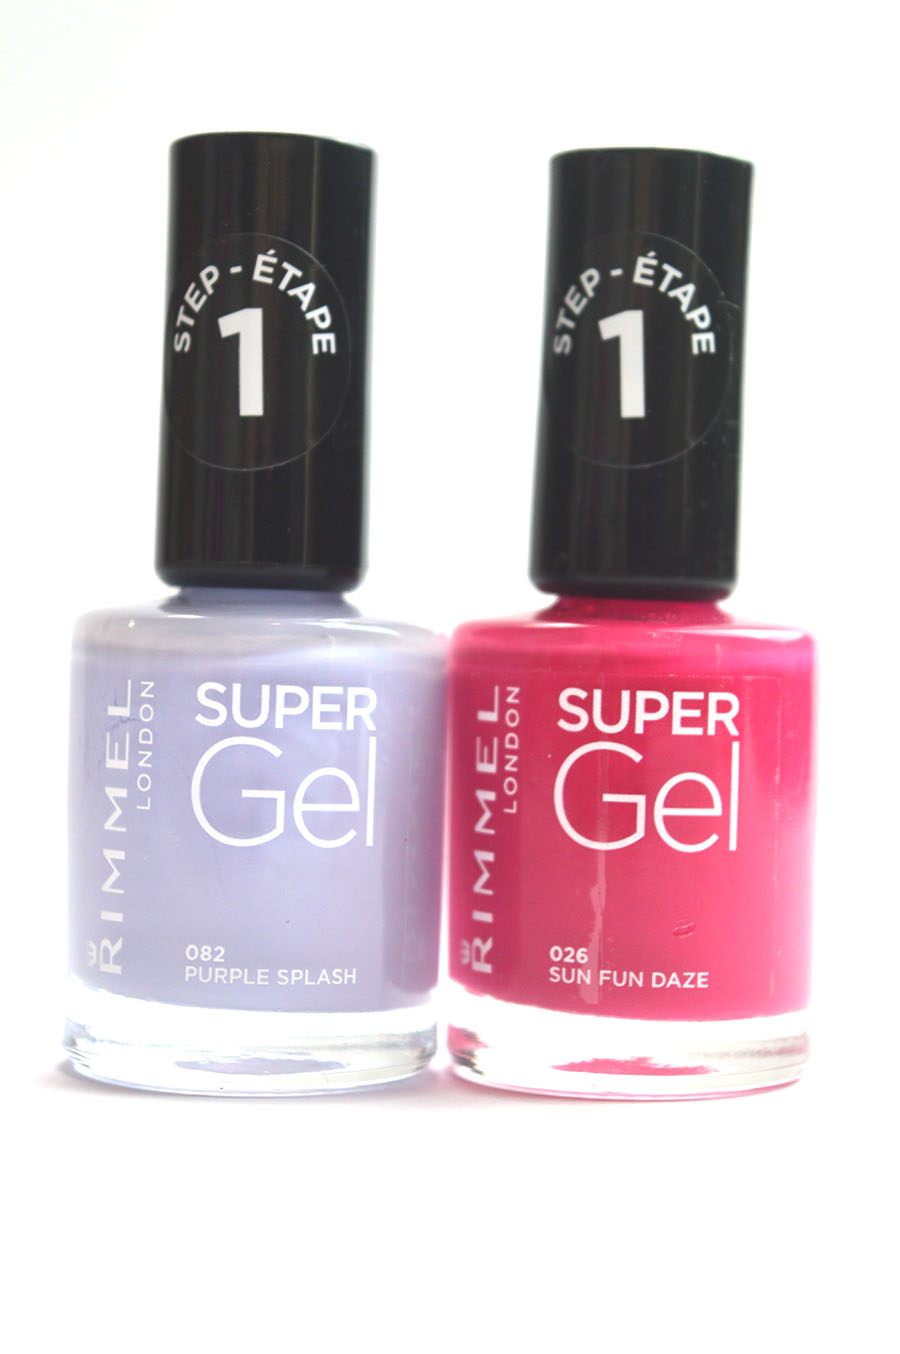 Rimmel London super gel review